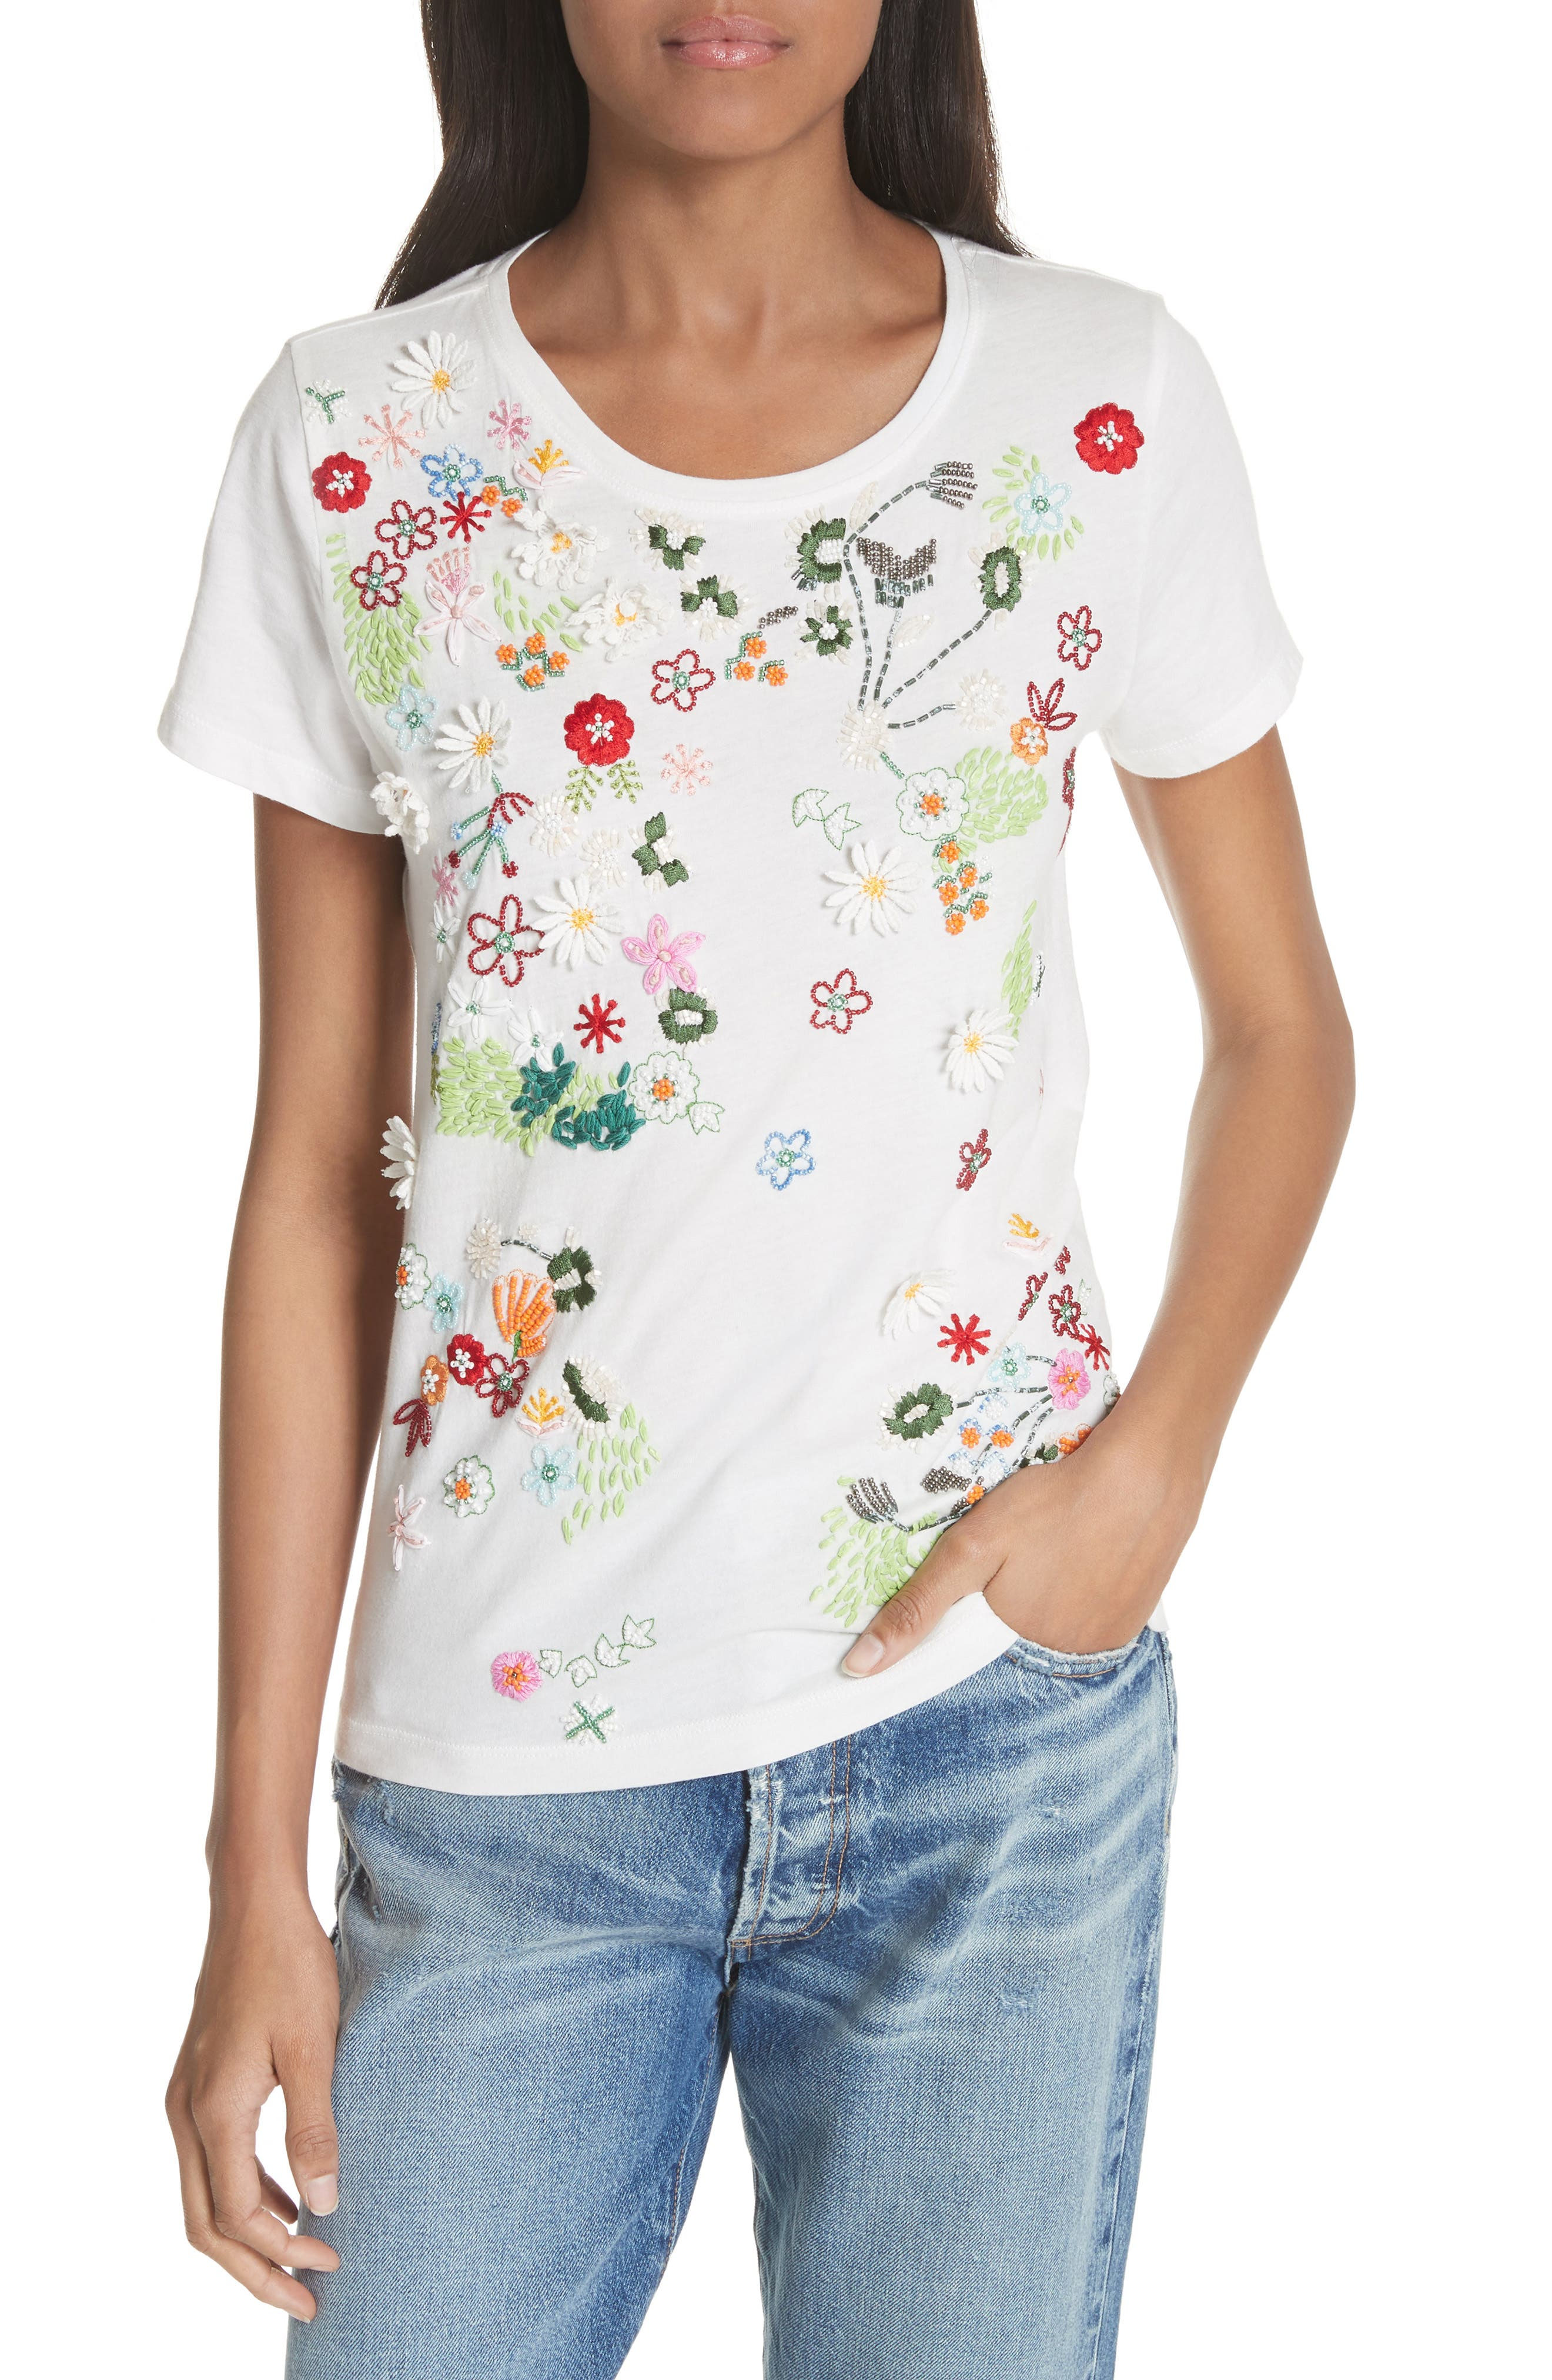 Rylyn Embellished Short Sleeve Tee,                             Main thumbnail 1, color,                             Off White/ Multi